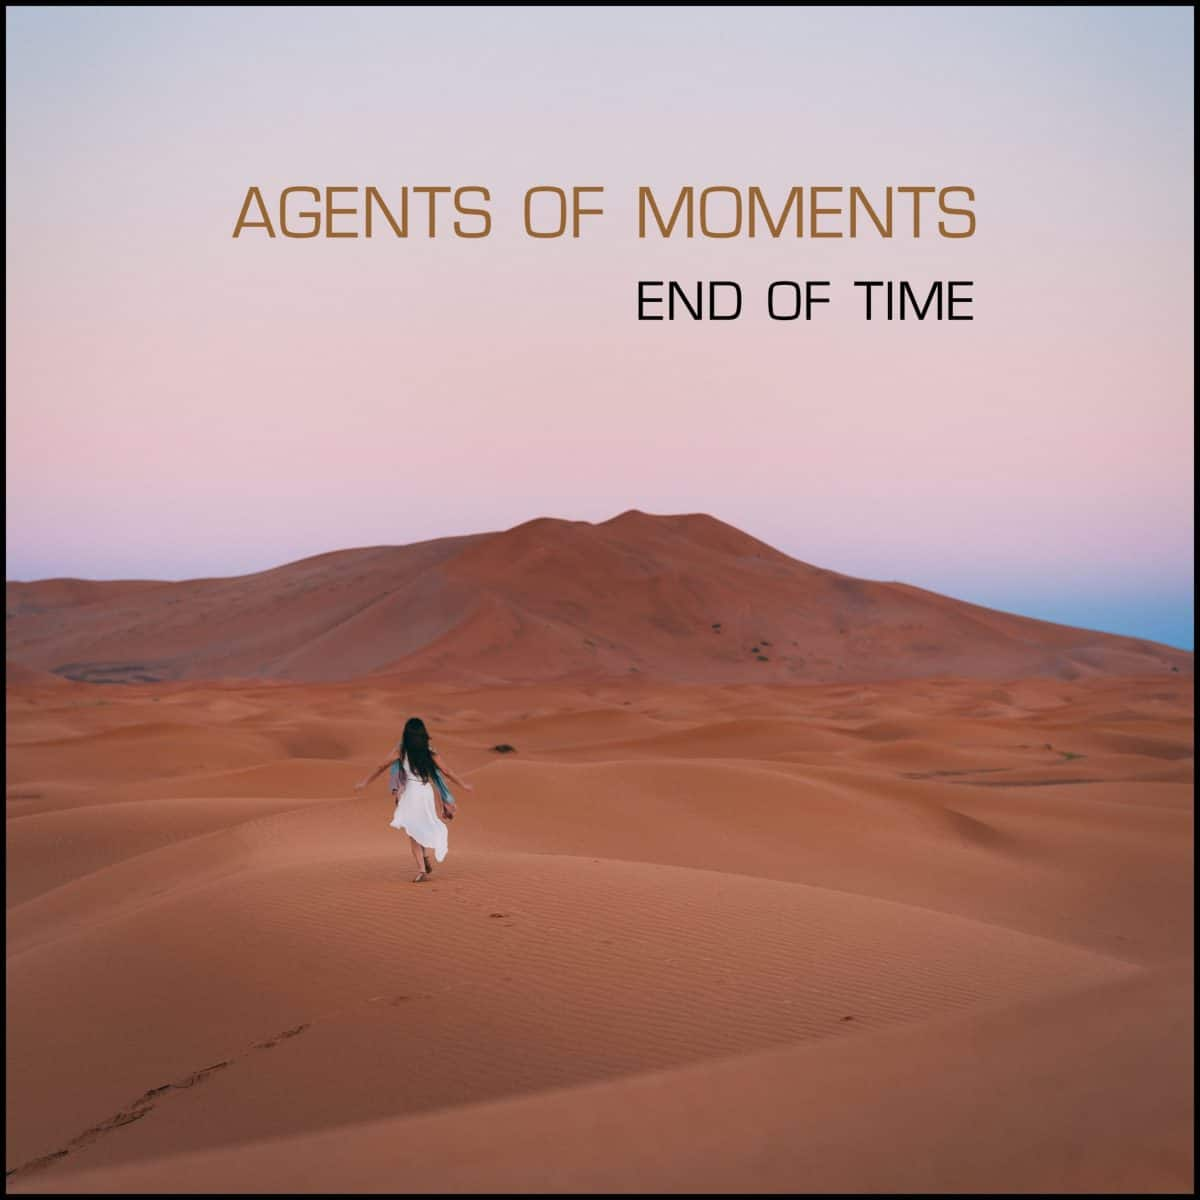 Agents of Moments - End of Time